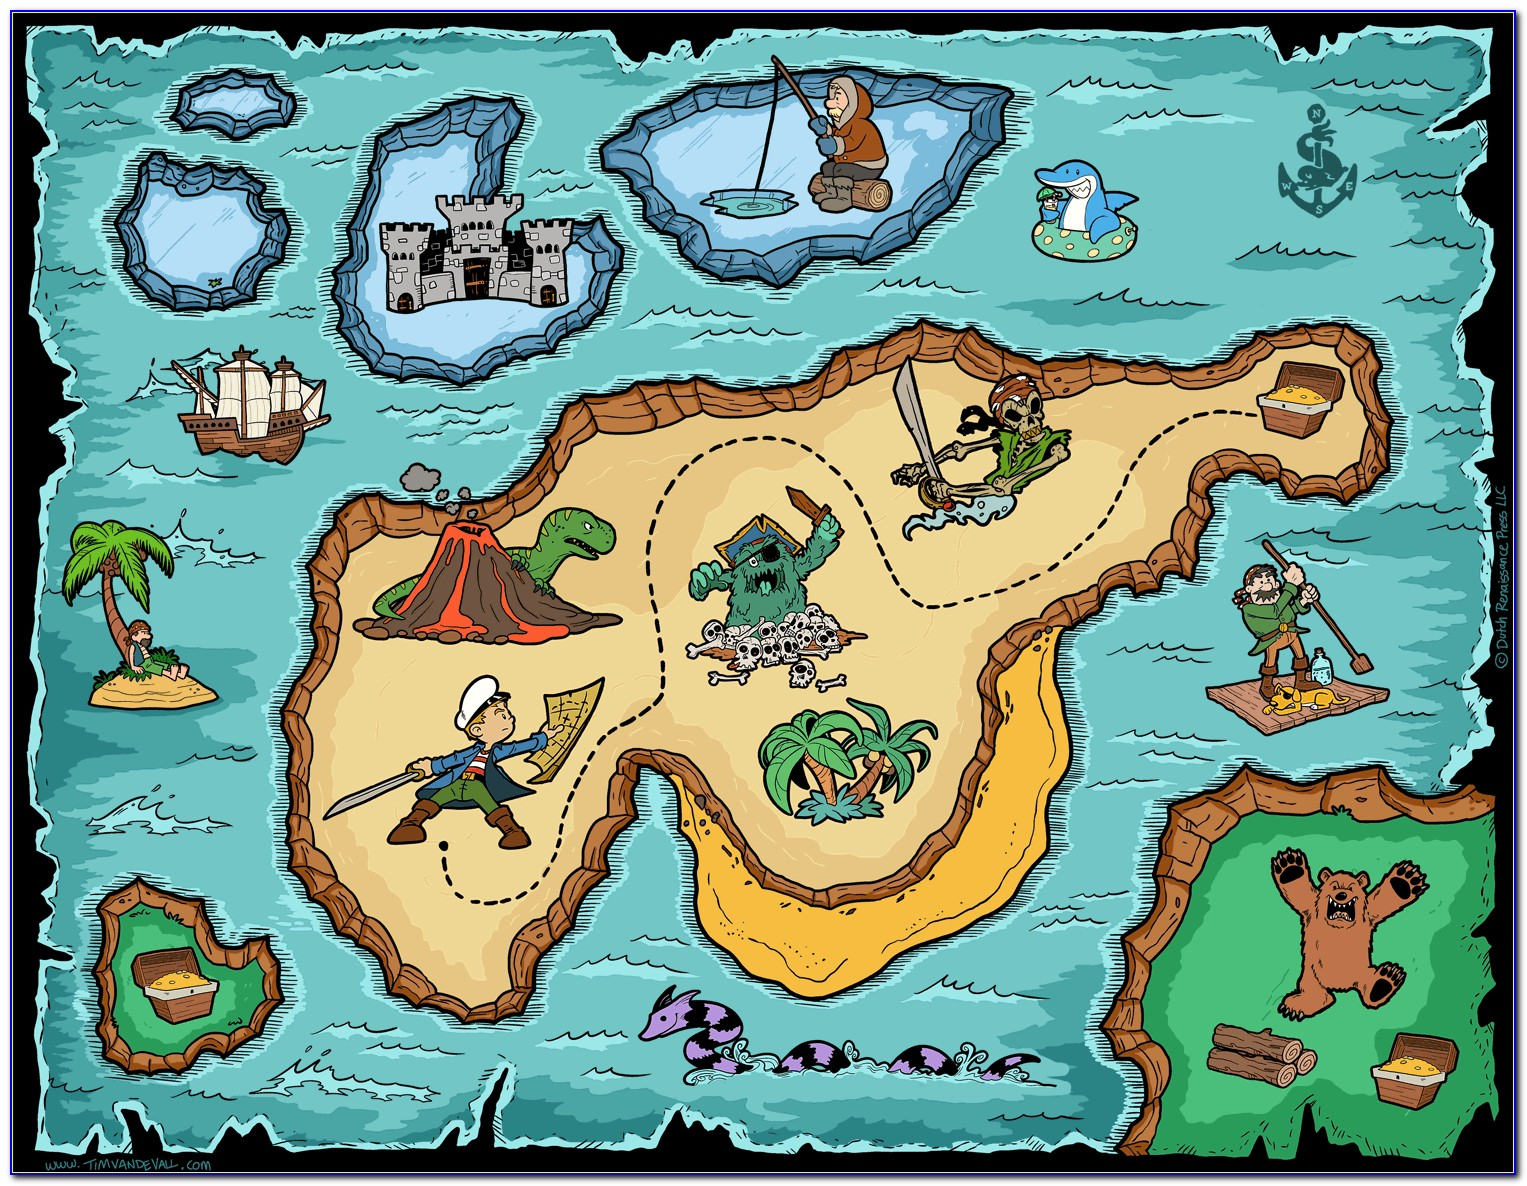 Image Of A Pirate Treasure Map